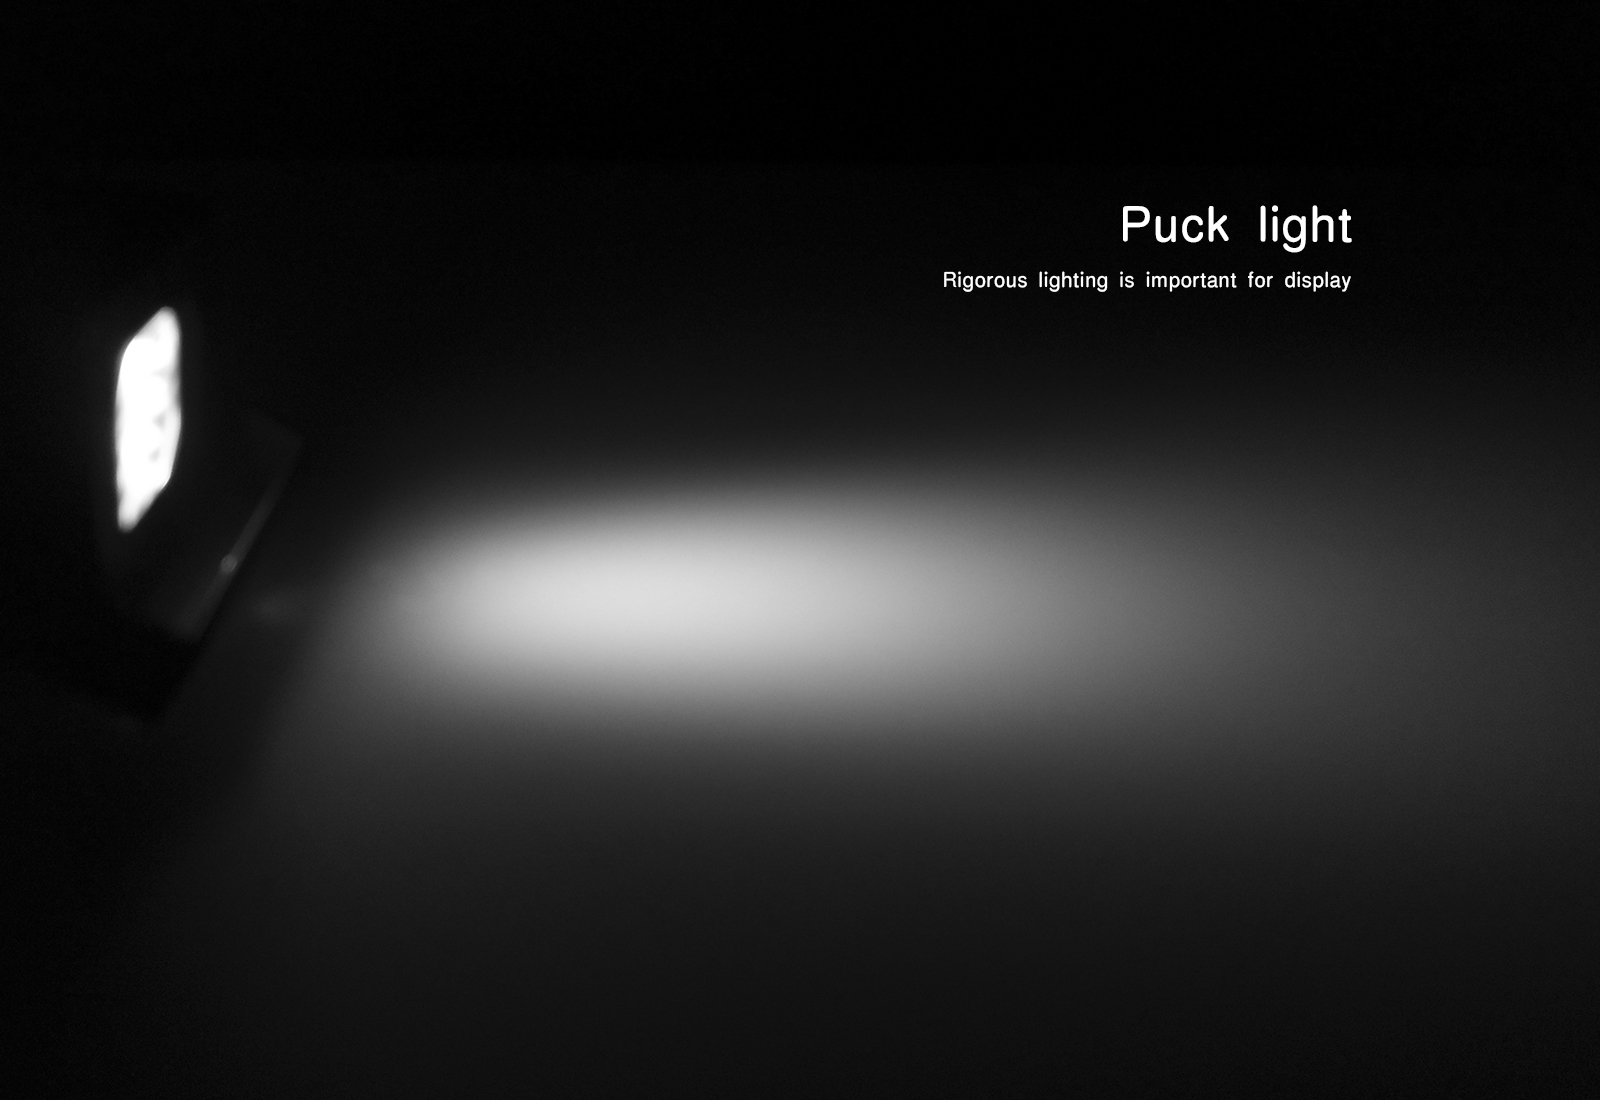 Flexible puck lights